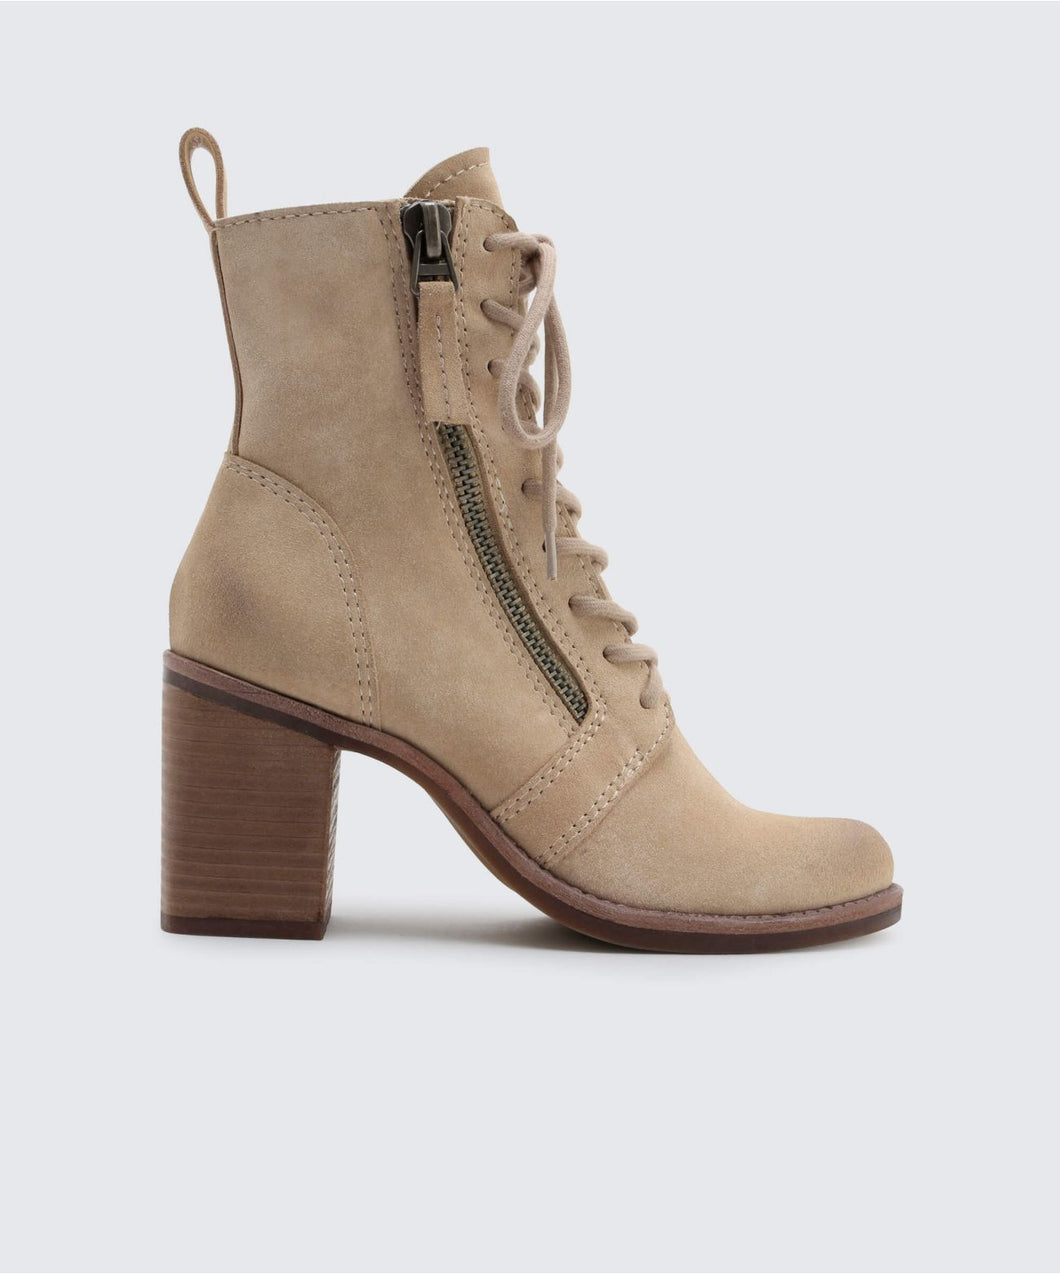 LELA BOOTIES IN LIGHT TAUPE -   Dolce Vita